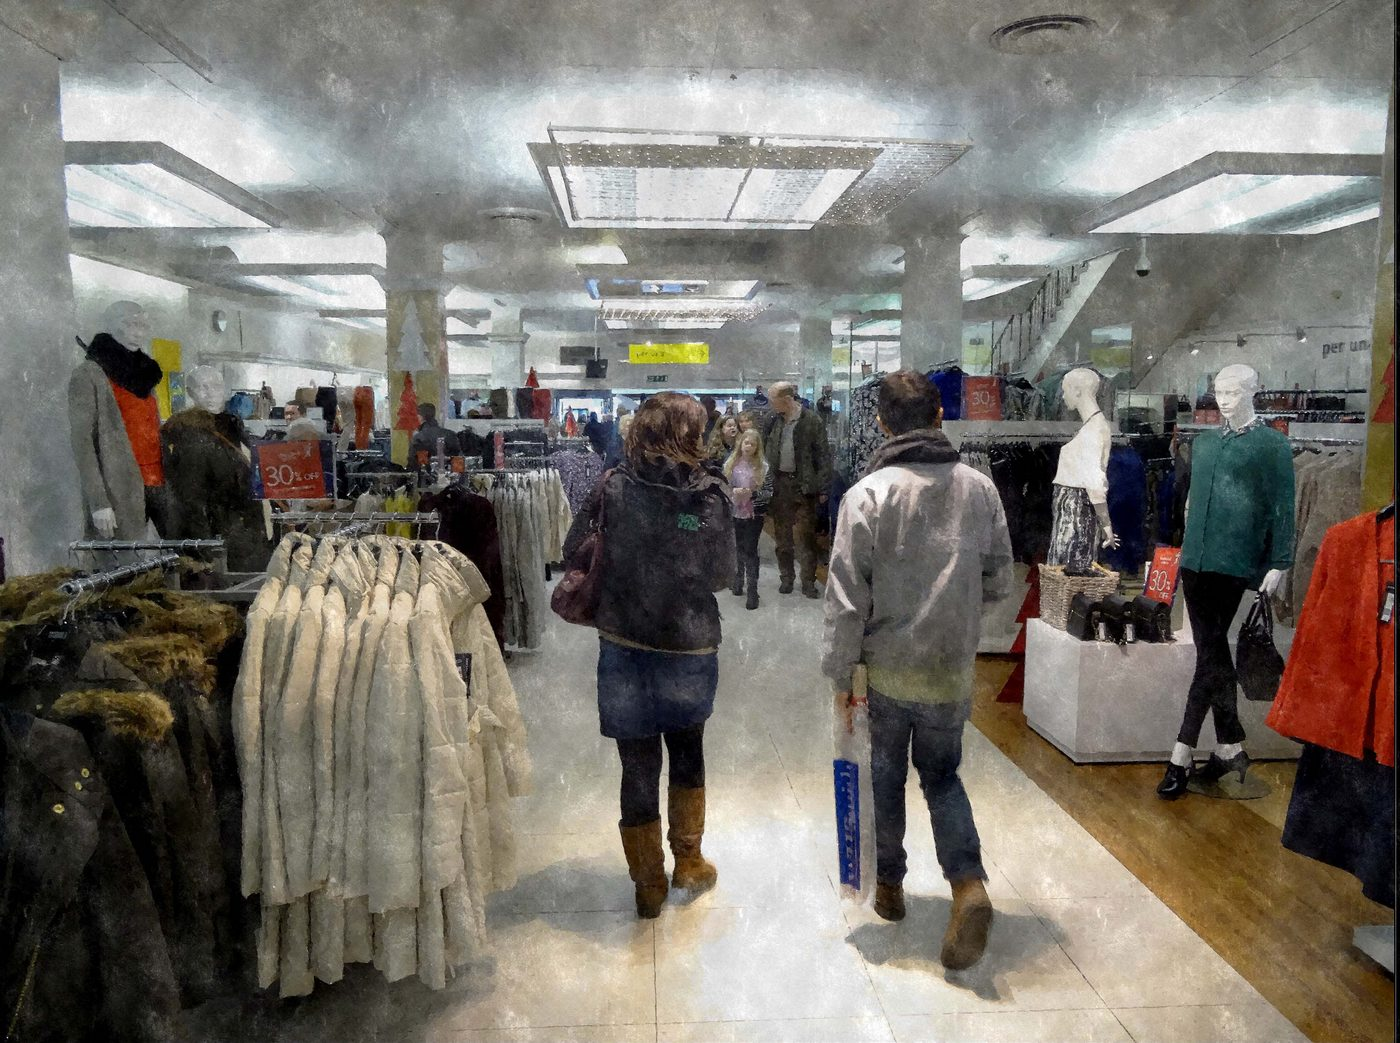 First 'Modern shopping' by Peter Read